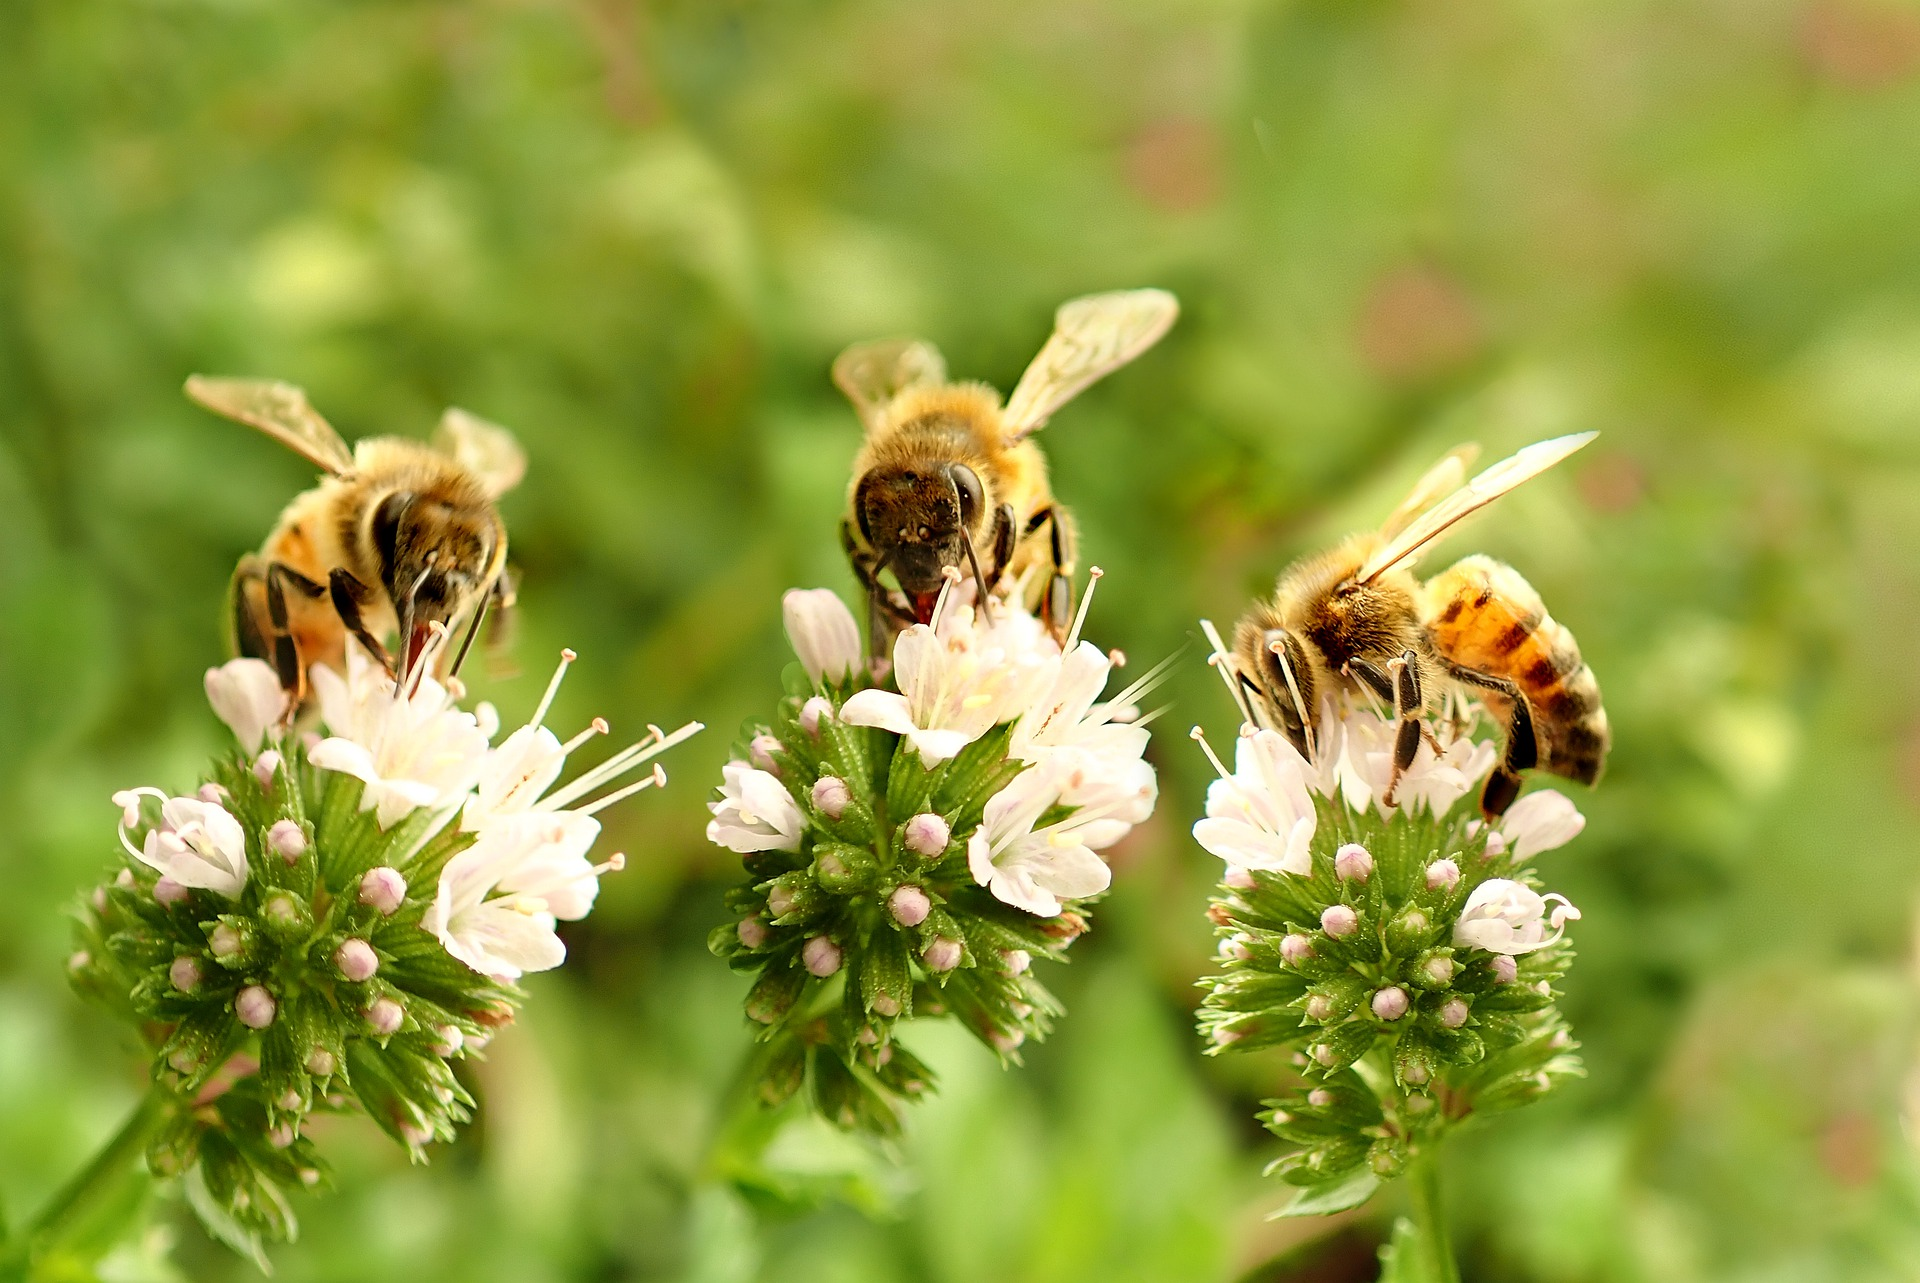 bees-5023483_1920